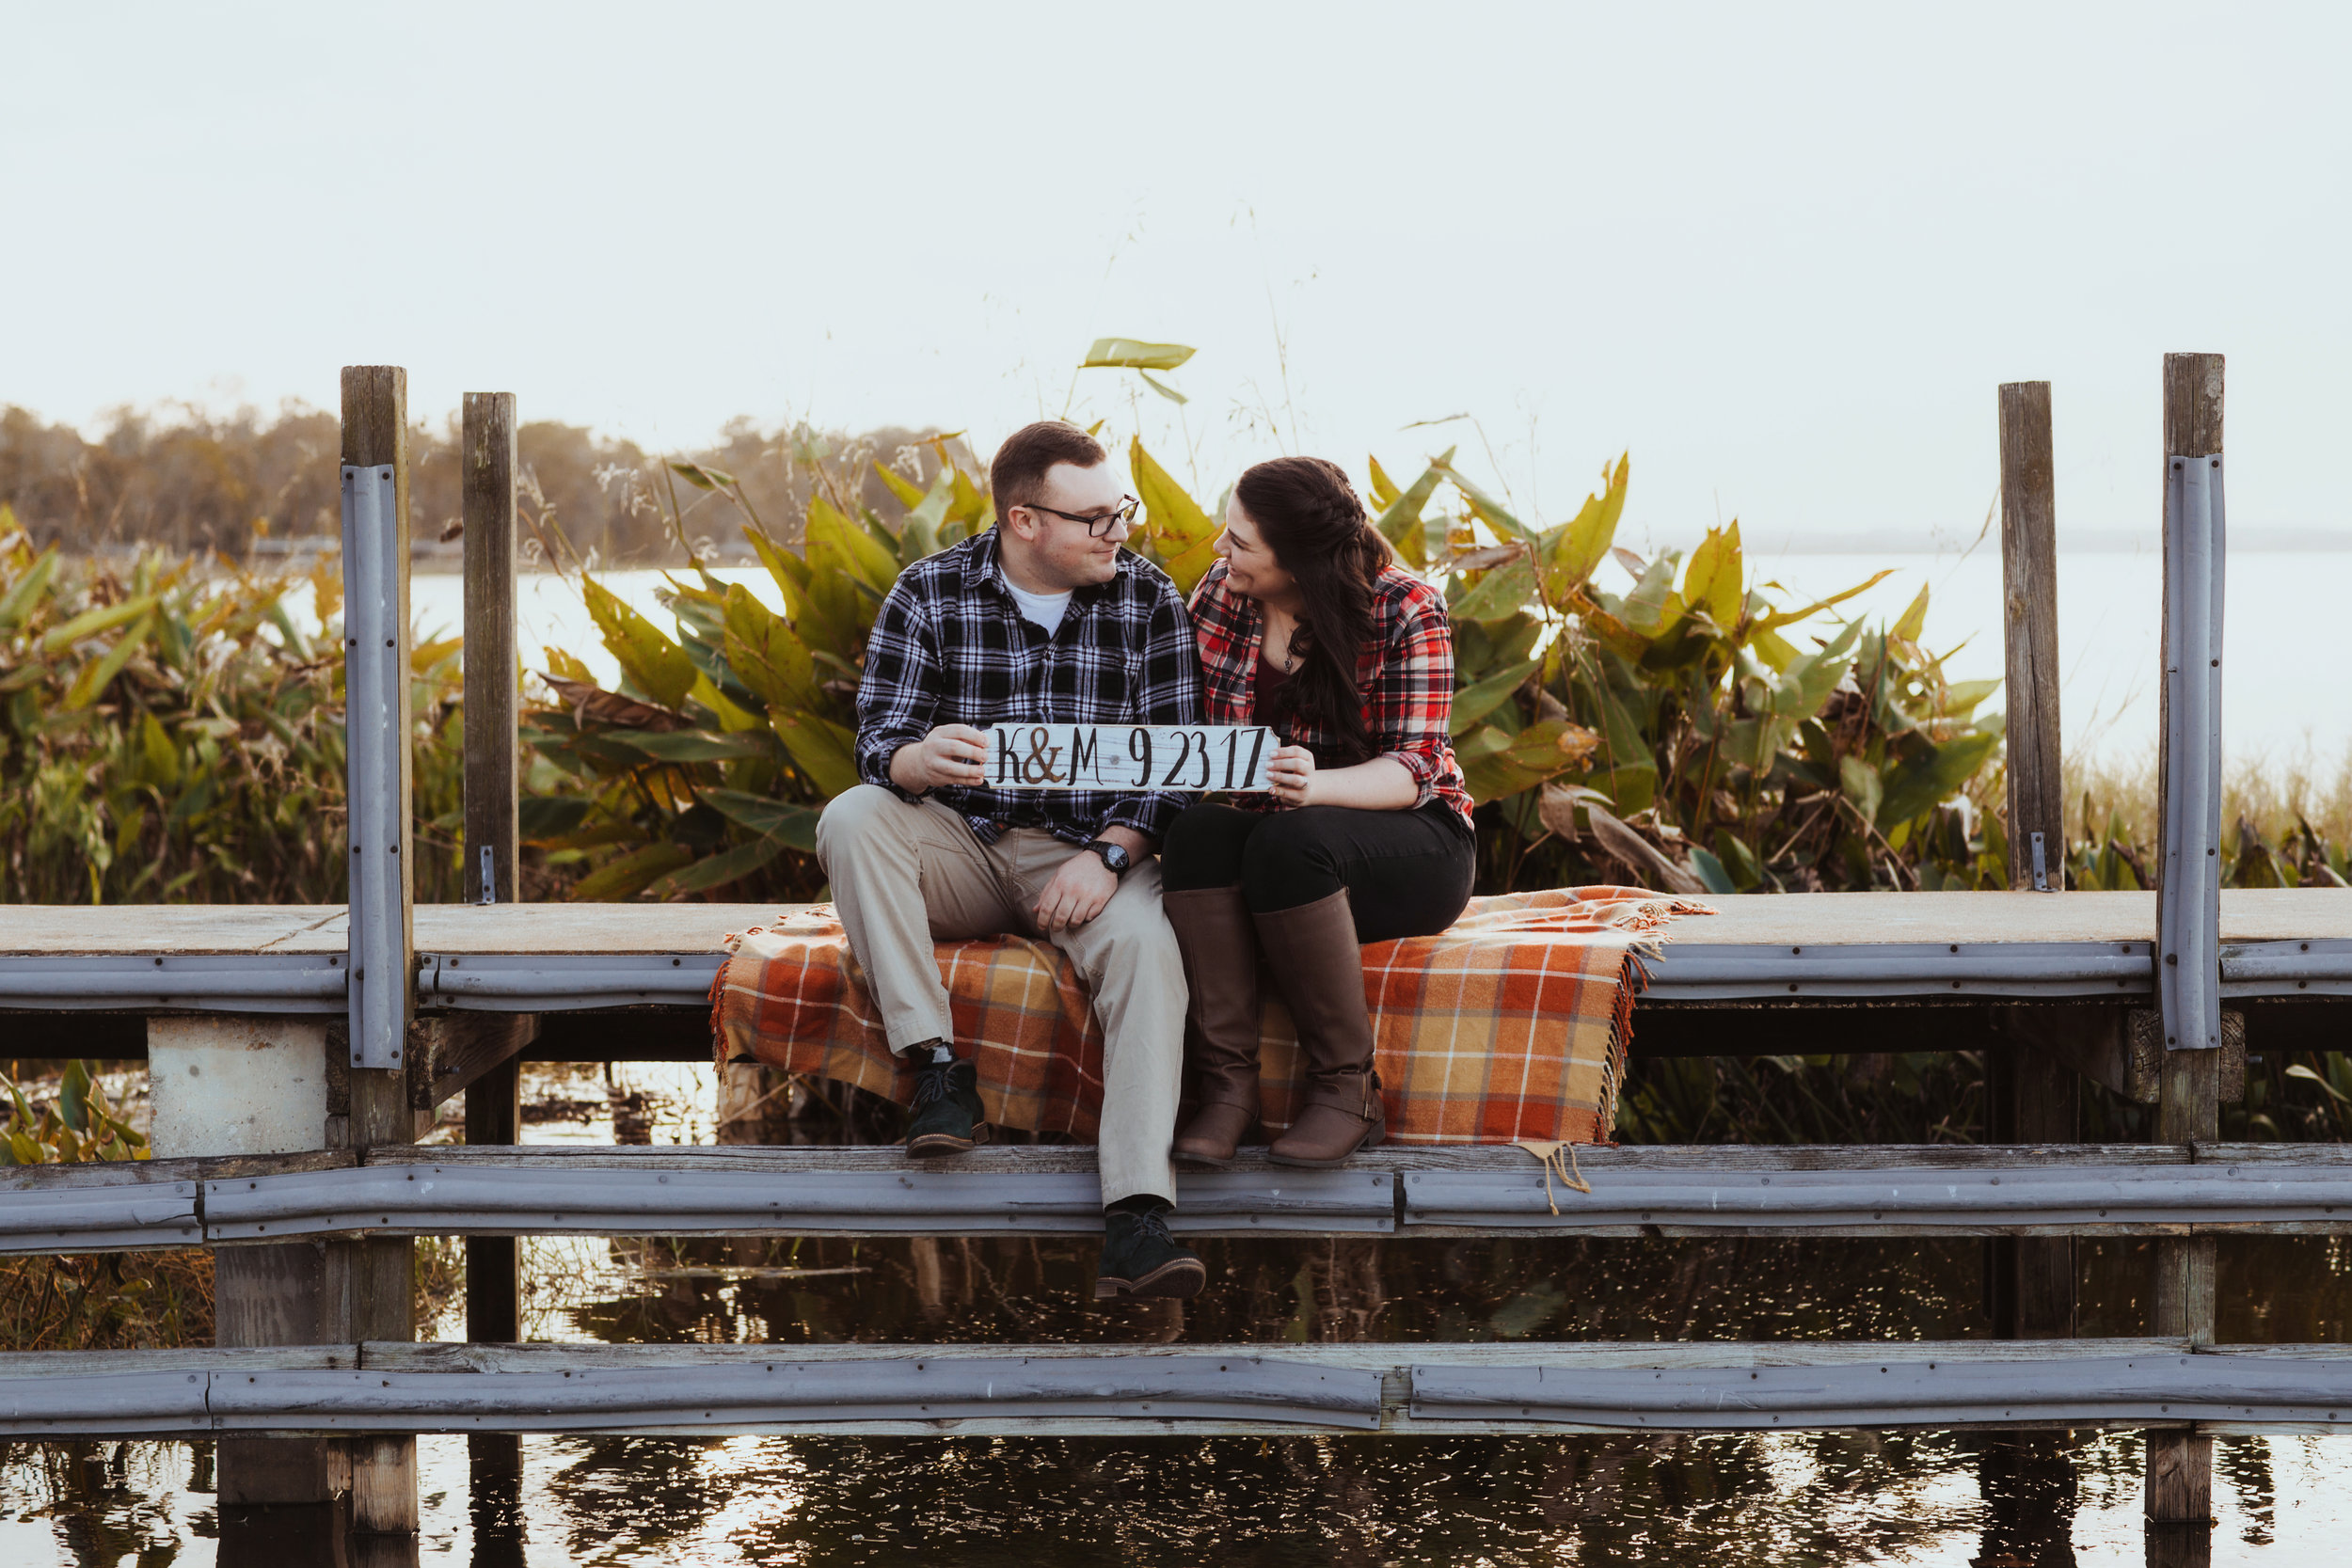 Engagement Session | Vanessa Boy |Vanessaboy.com | orlando,fl-161.com |final.jpg